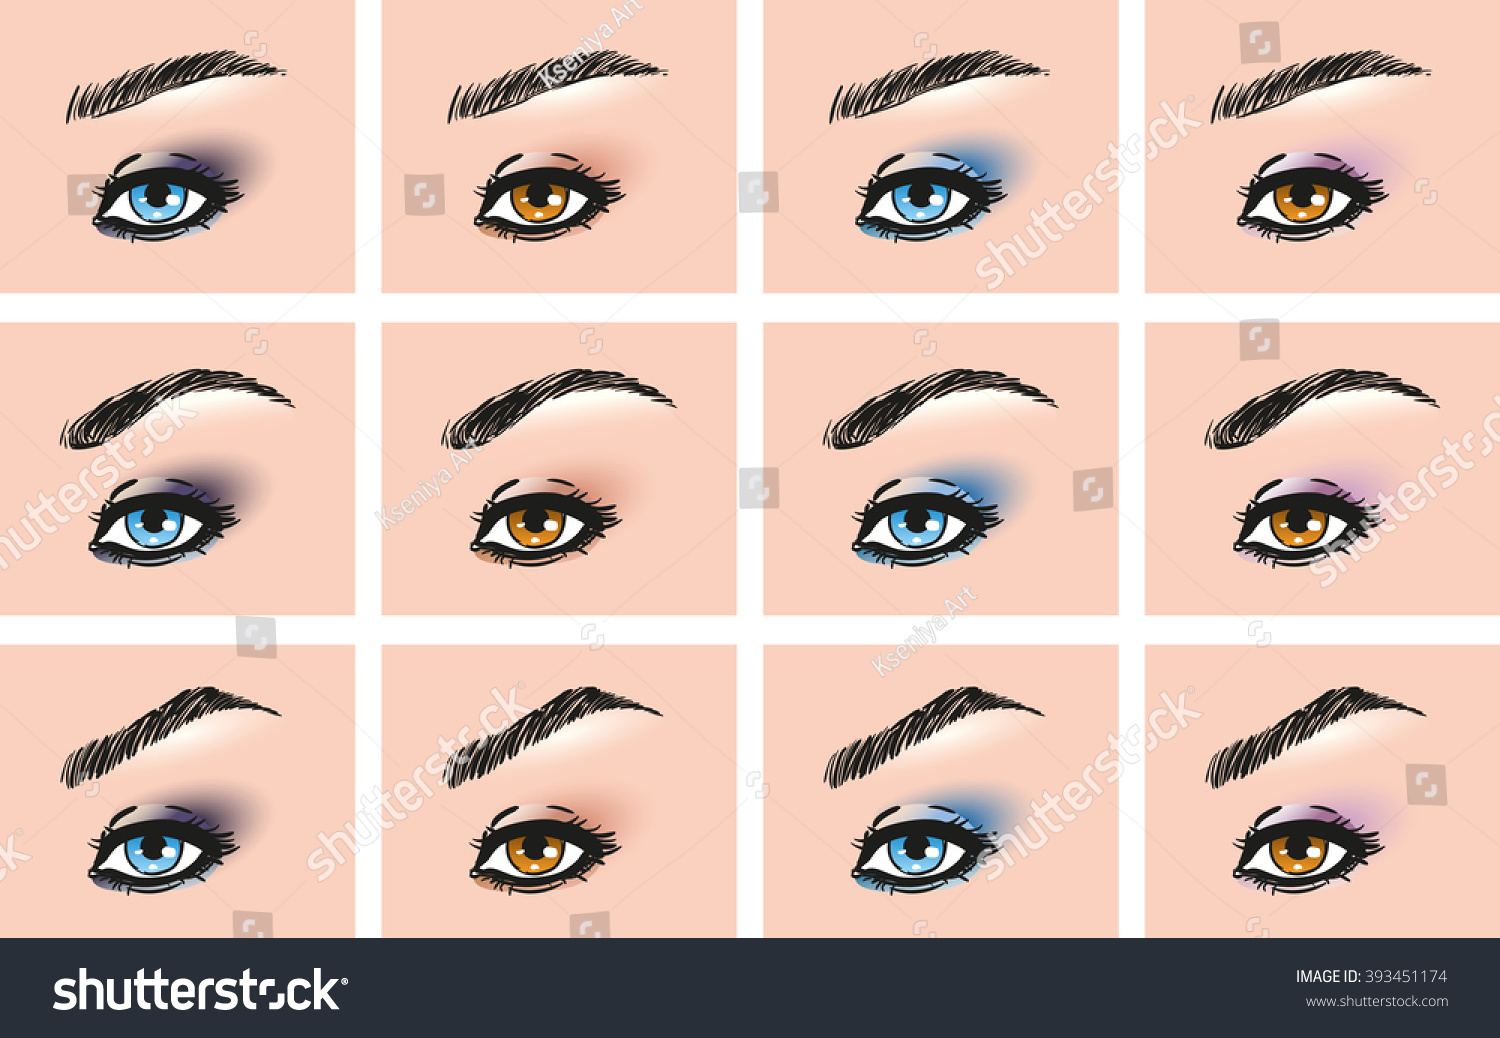 Set Female Eye Different Forms Eyebrows Stock Vector Royalty Free